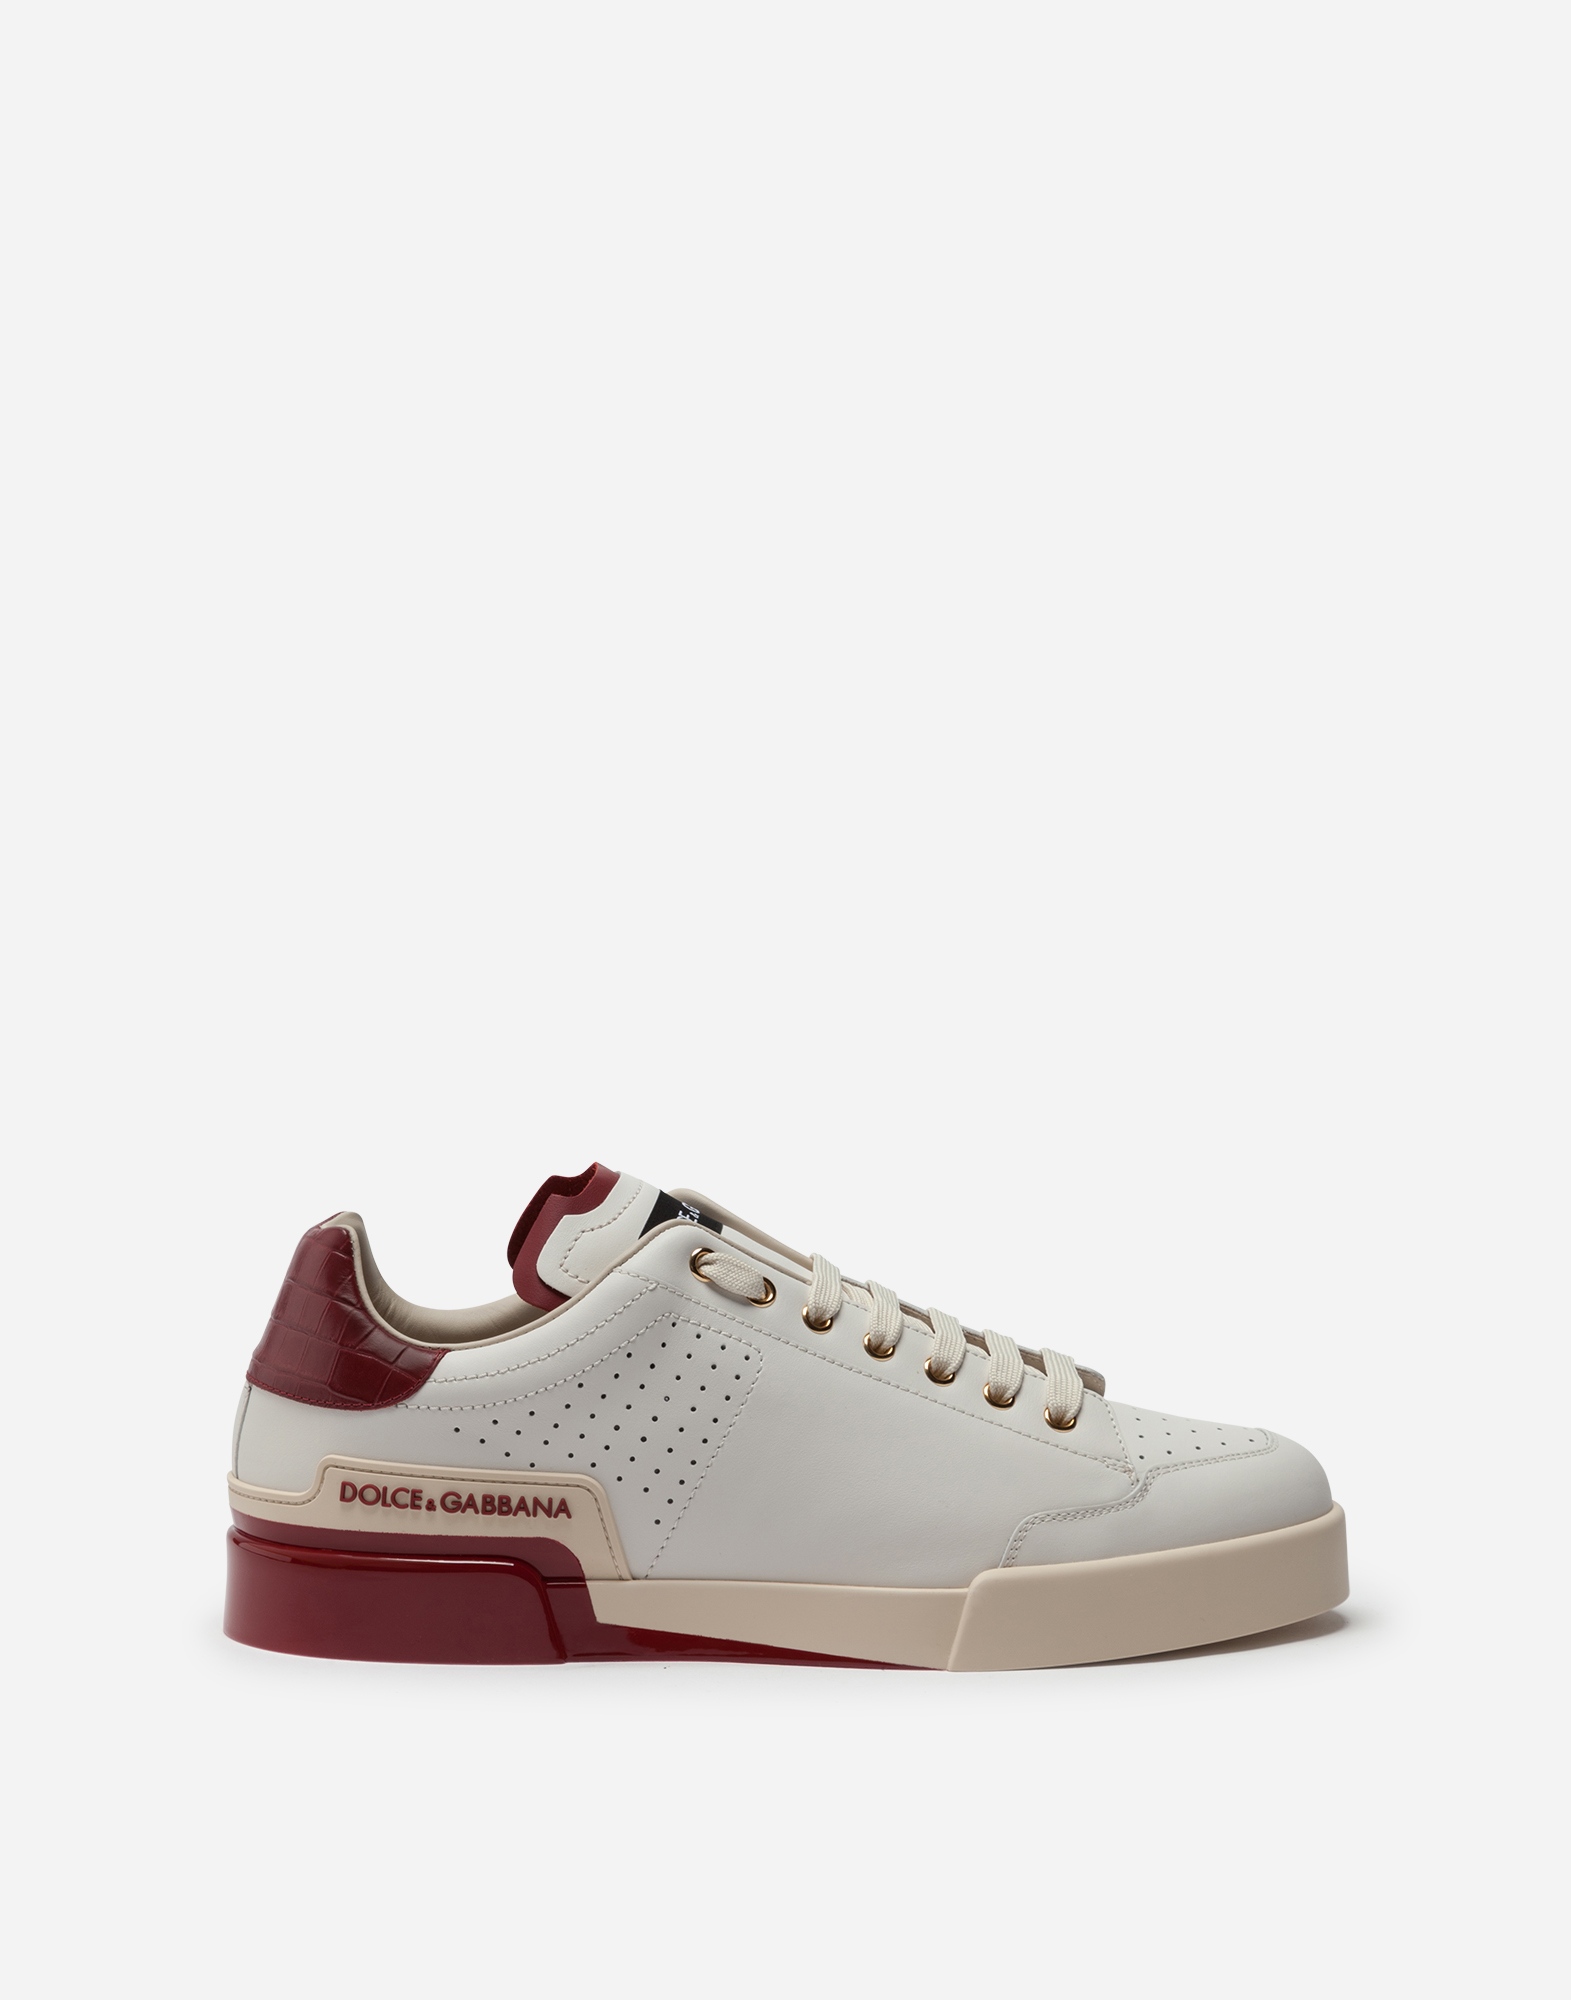 Dolce & Gabbana Calfskin Nappa Portofino Sneakers With Painted Sole In White